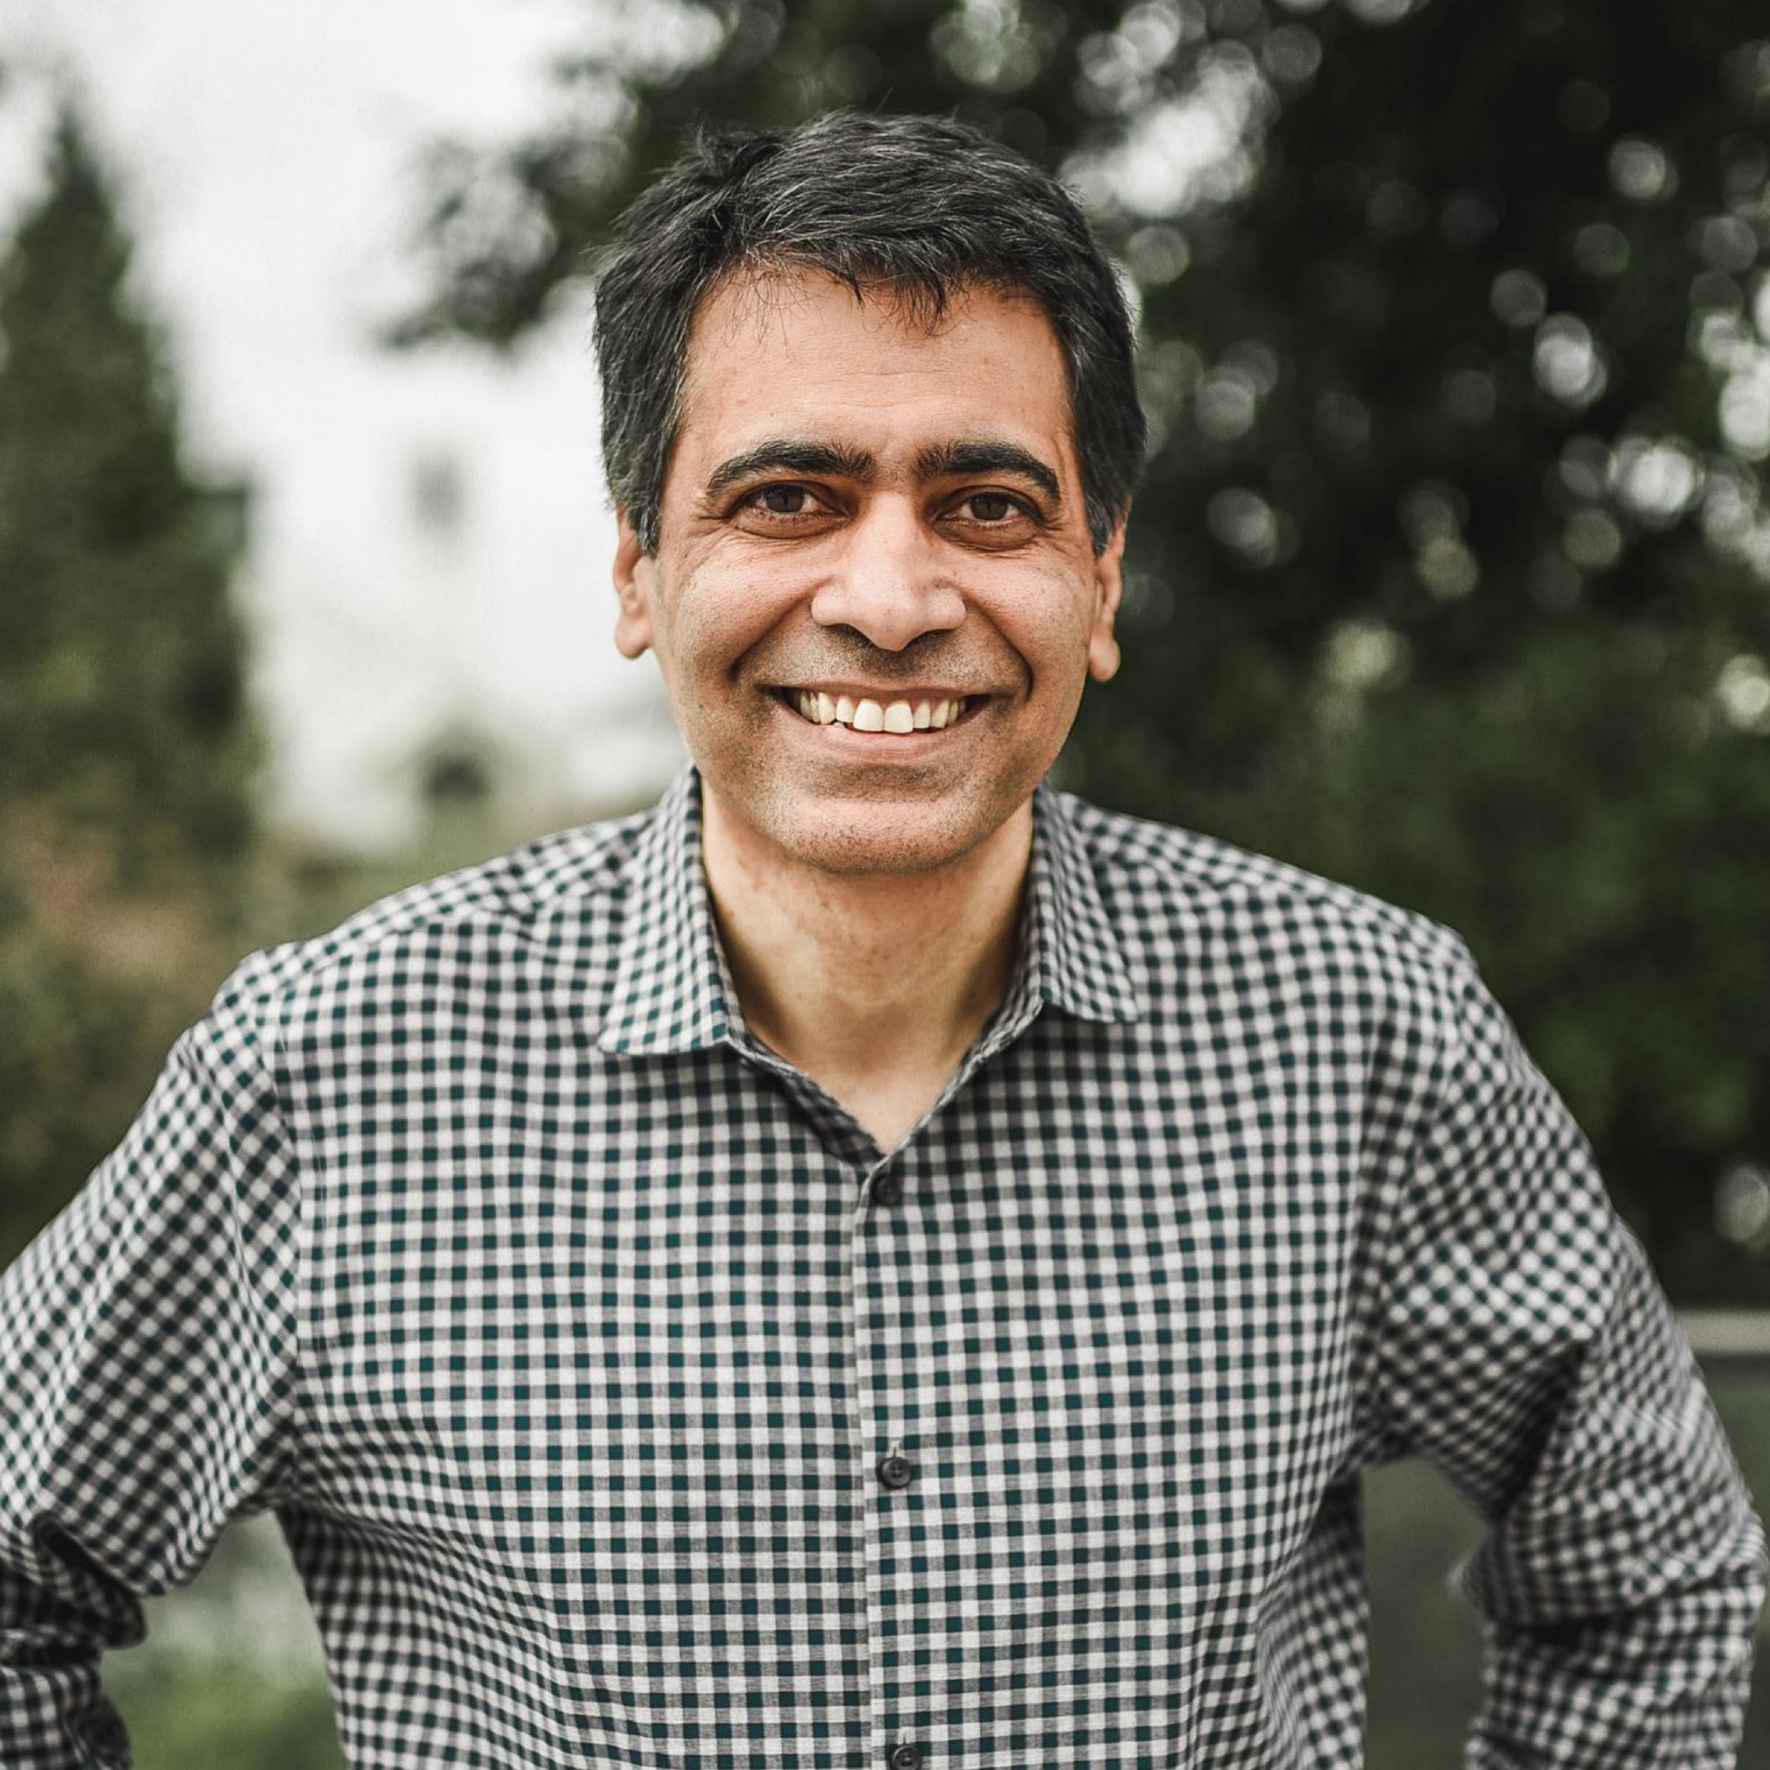 Ikhlaq Sidhu, Founding Director and Chief Scientist, Sutardja Center for Entrepreneurship & Technology at UC Berkeley